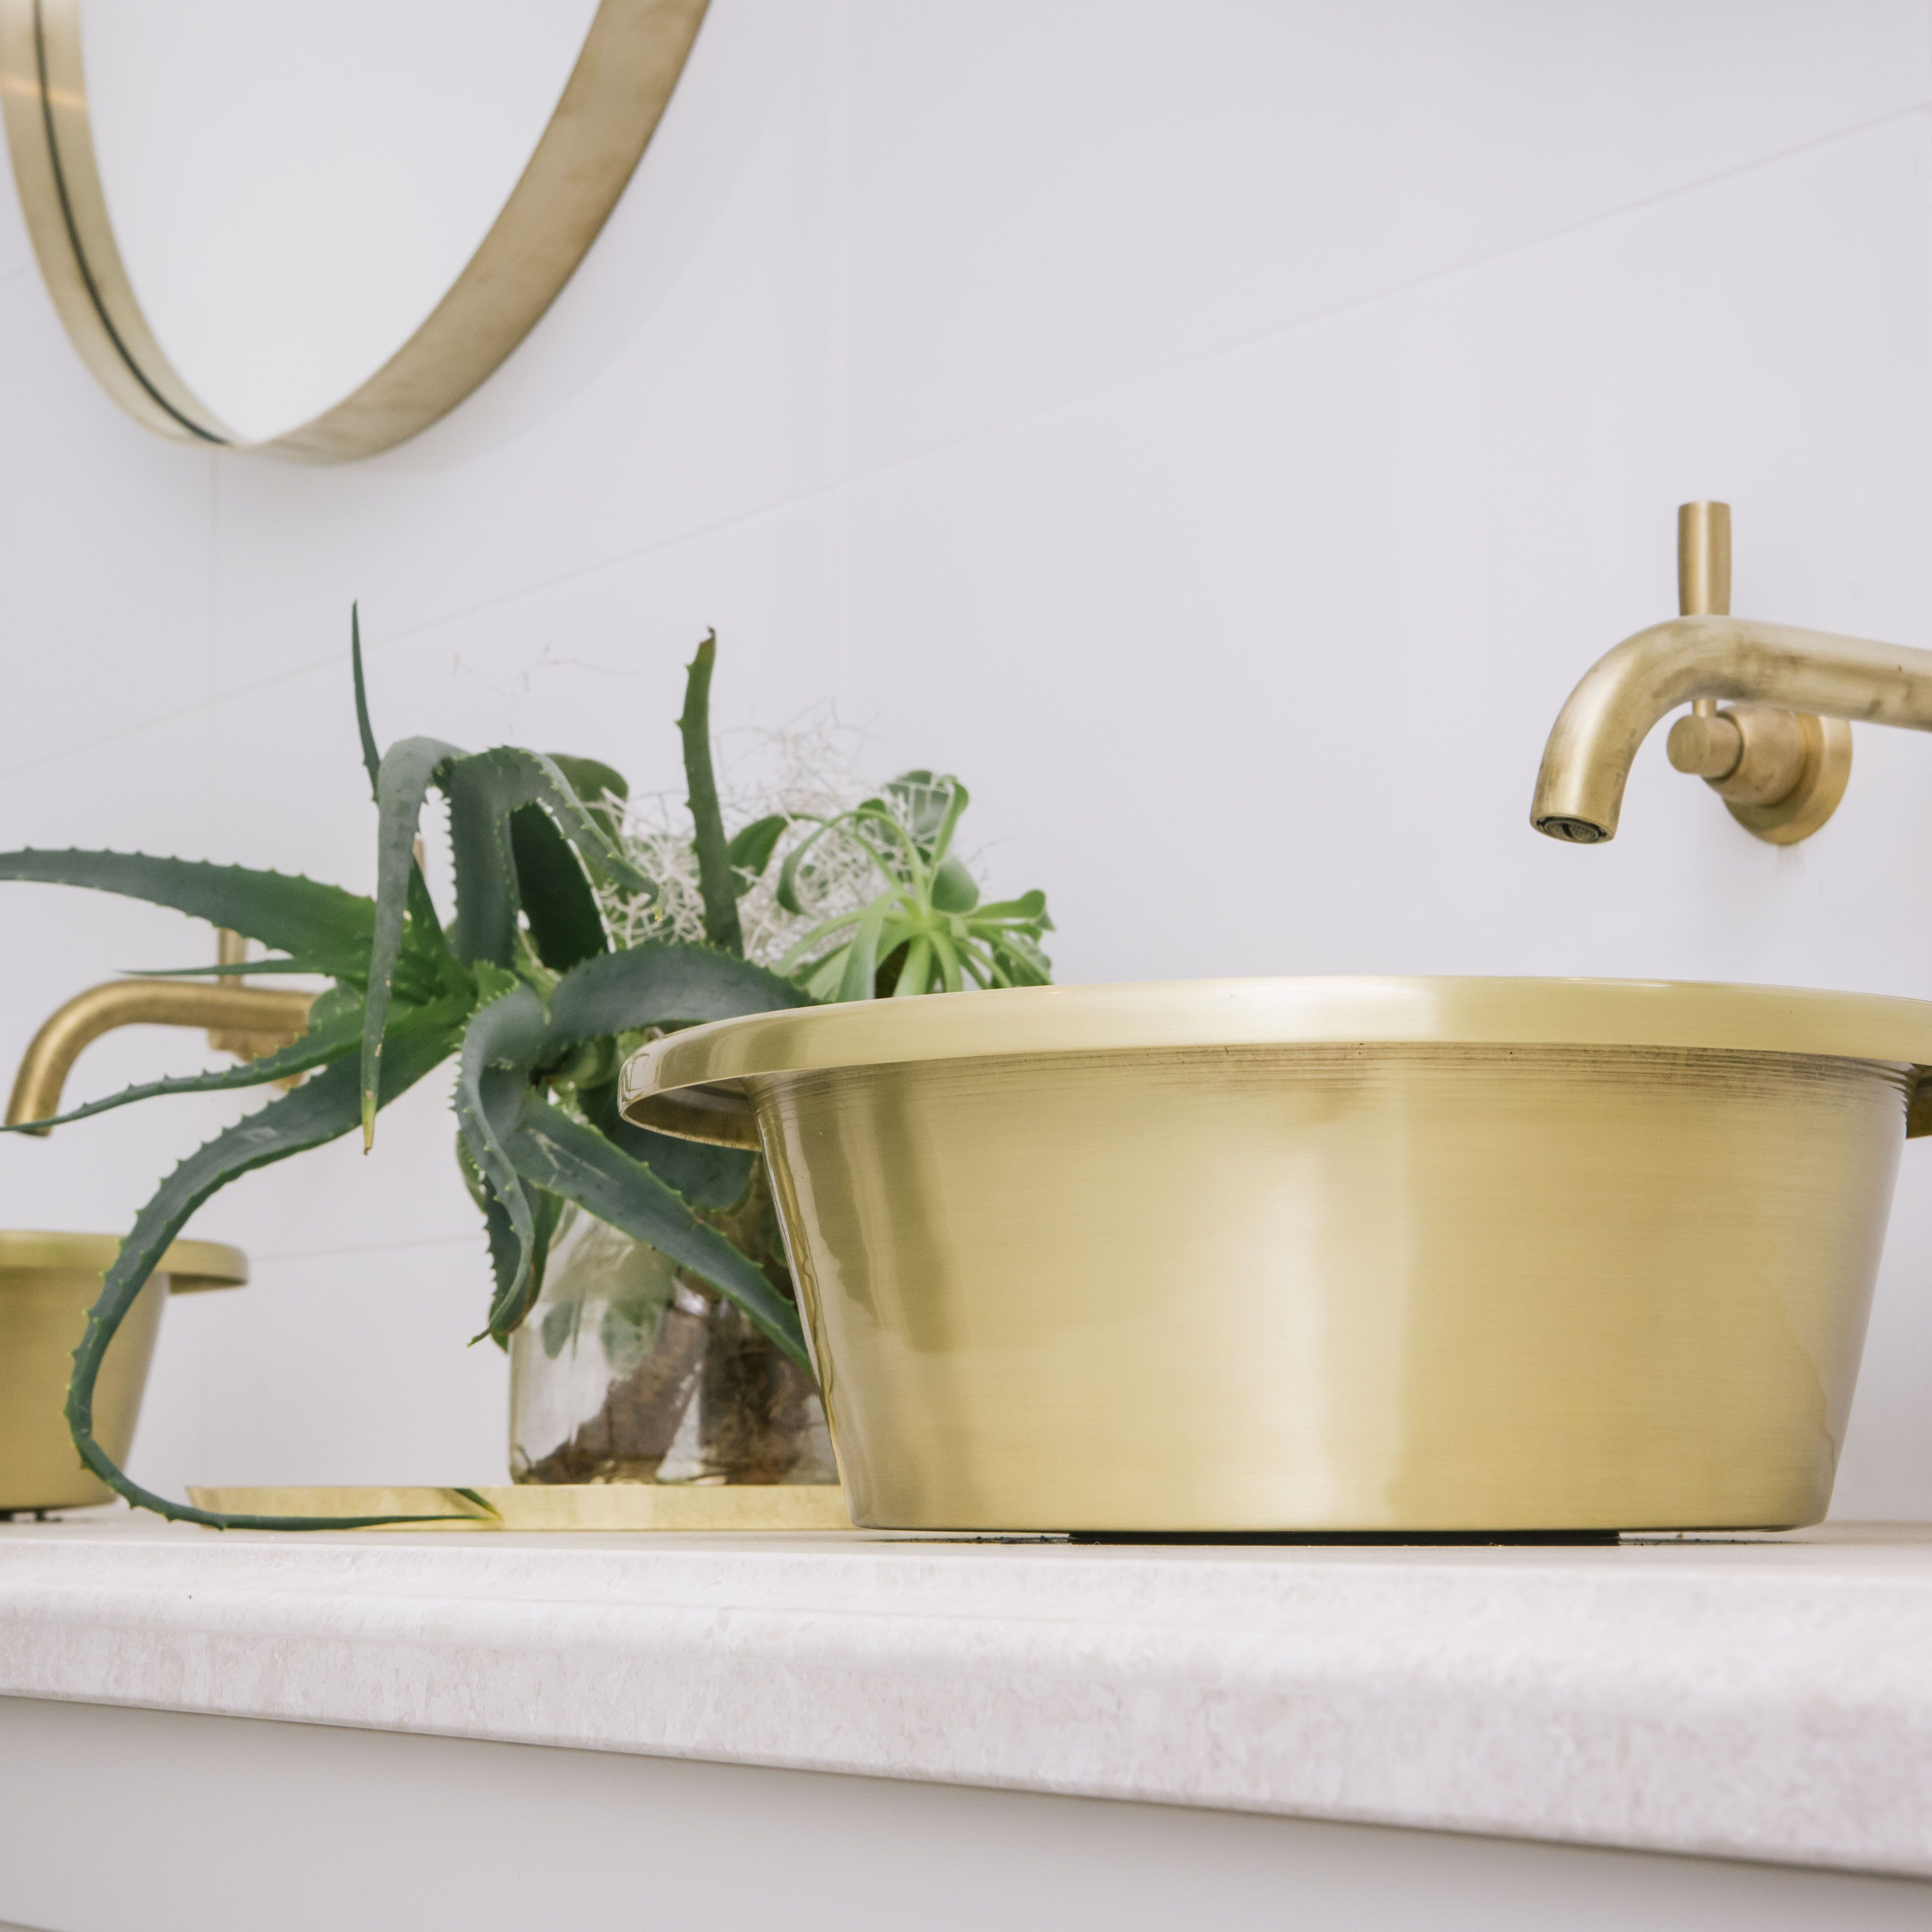 The understated glamour of our brushed brass Orlo basins. www.williamholland.com